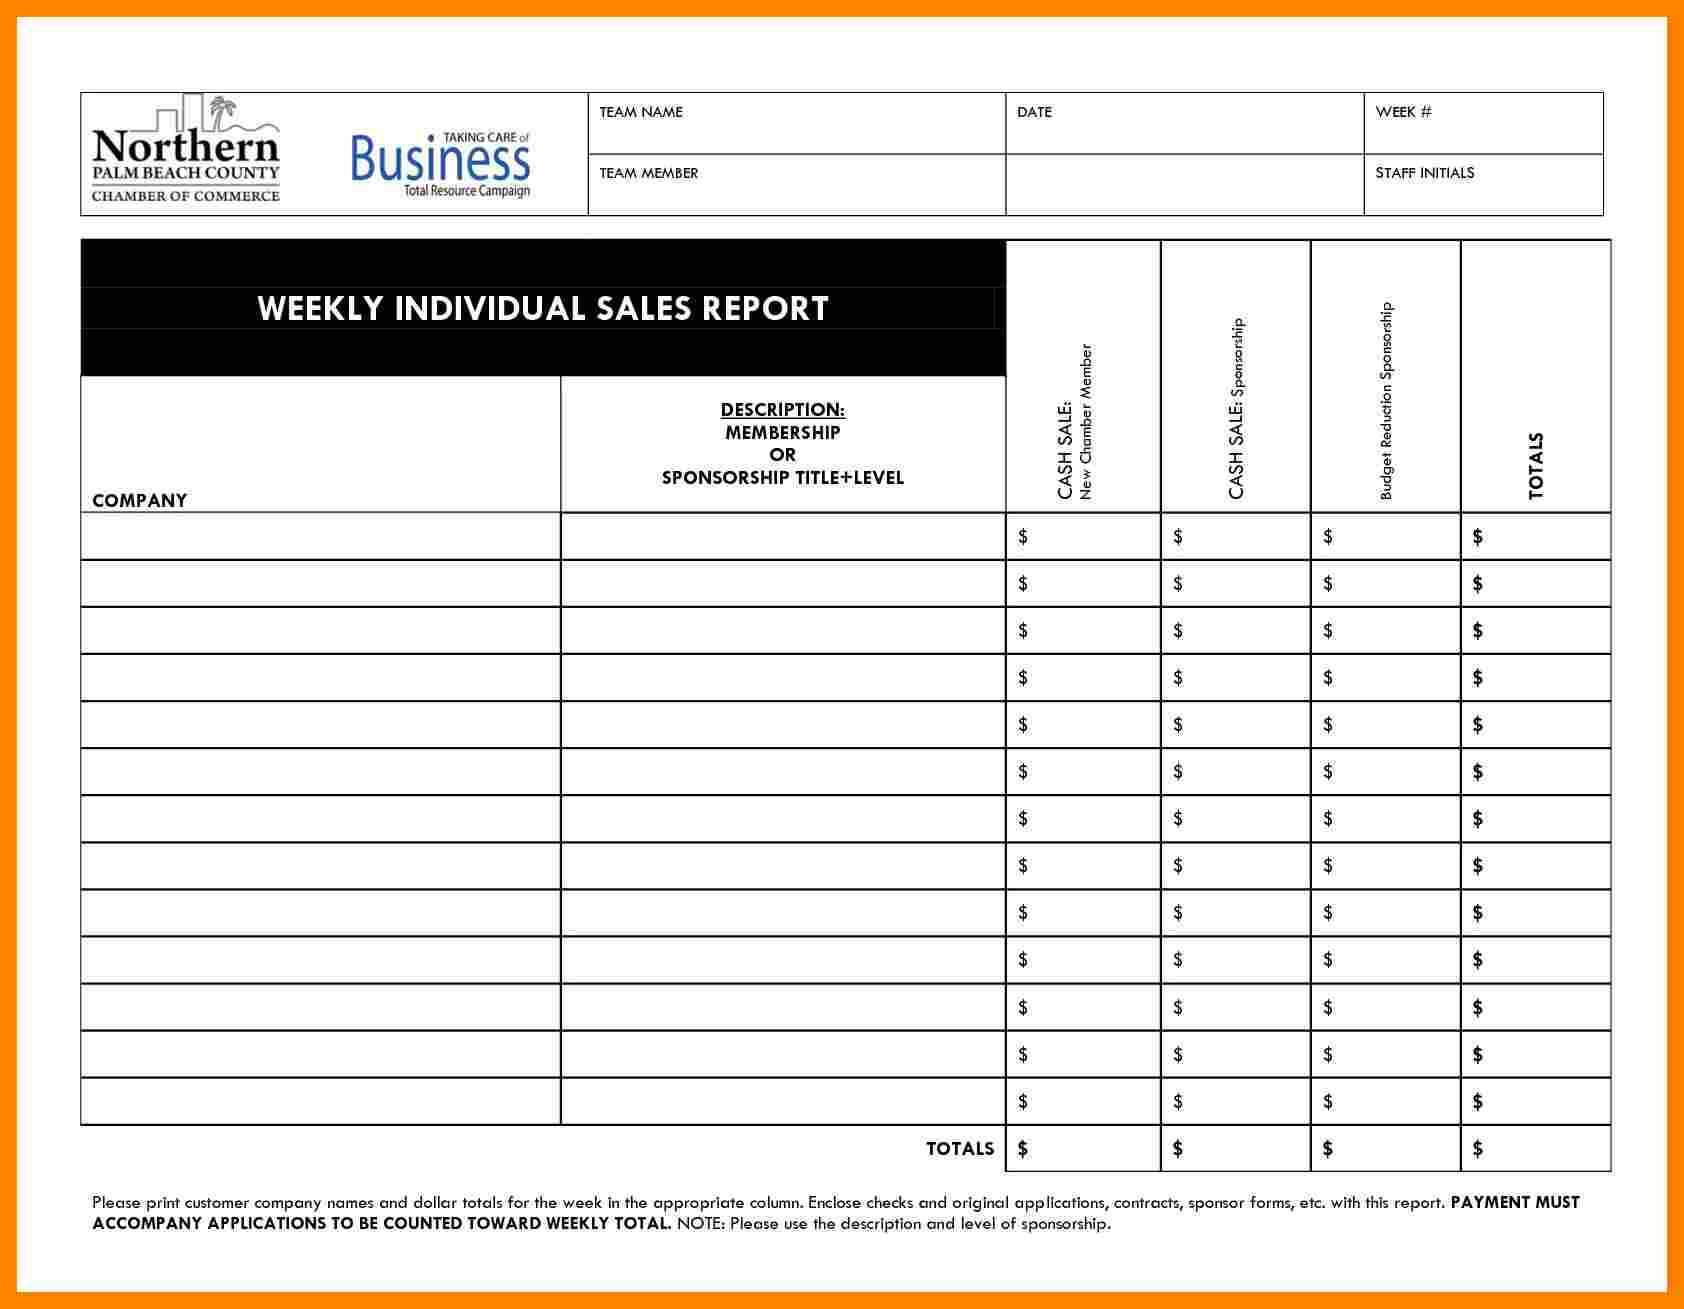 010 Daily Activity Report Template Free Download Salesll For Daily Sales Call Report Template Free Download